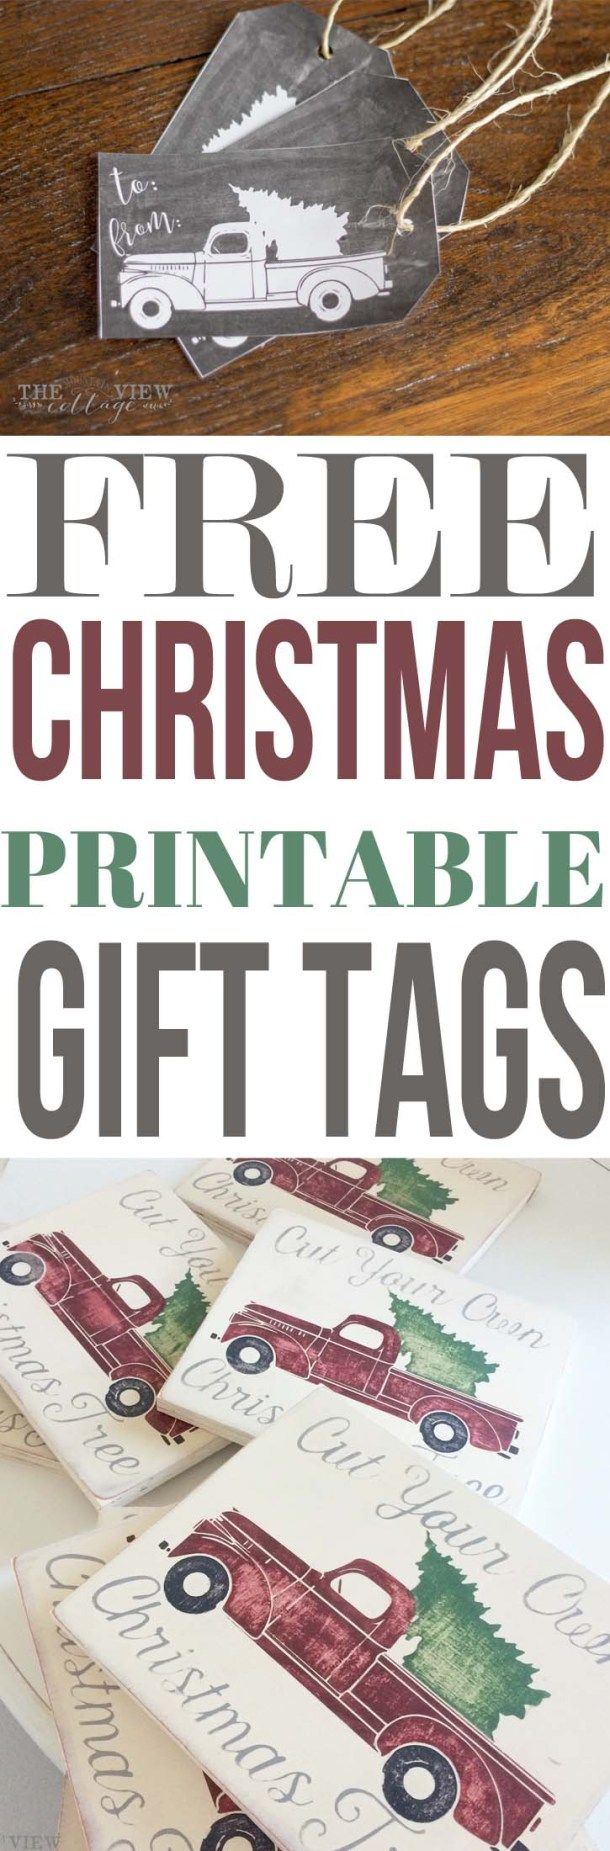 Vintage Truck Getting the Annual Christmas Tree Free Printable Holiday Gift Tags   The Mountain View Cottage - The BEST Christmas and Holiday FREE Printables - Gift Tags - Gift Card Holders - Christmas Greeting Cards and more FREE Downloadable Printables for the Holiday Seasons